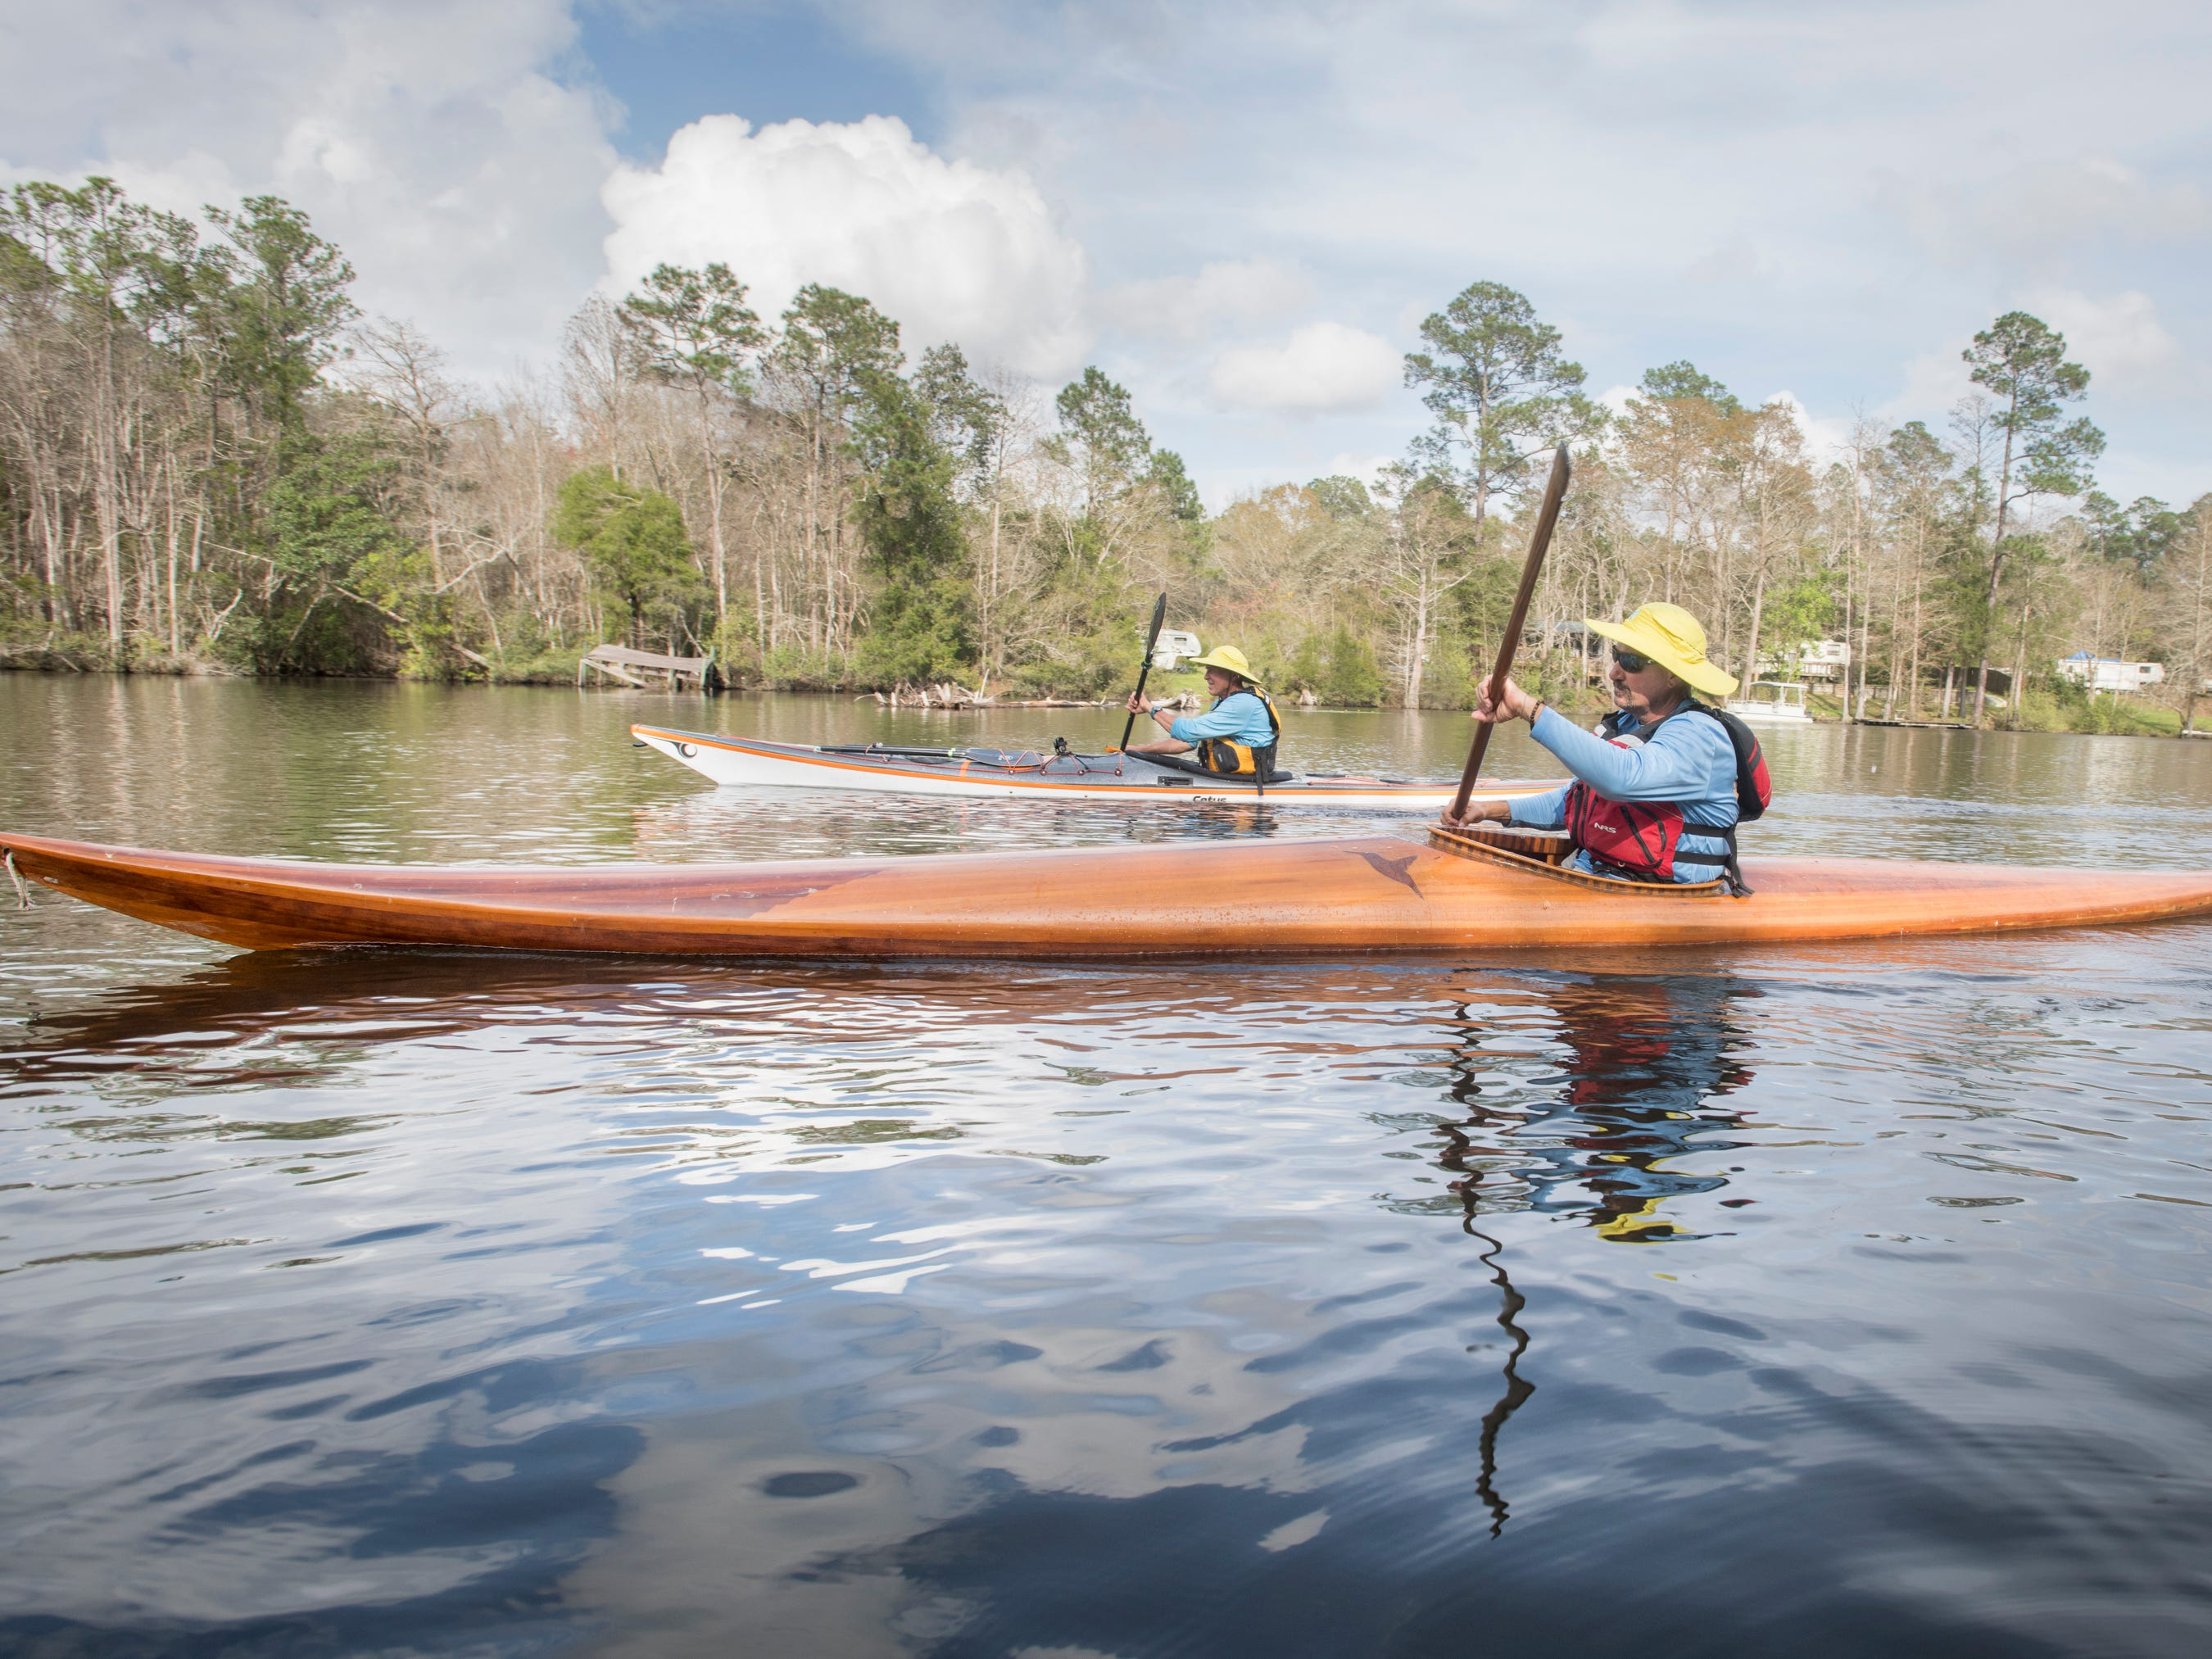 Paul Gelderblom, of Charlevoix, Michigan, top, and Guerry Bradley, of St. Augustine, kayak on the Perdido River near the Wilson Robertson Boat Ramp in Pensacola on Monday, March 11, 2019.  Paddle Florida is hosting 60 paddlers on a 5-day, 60-mile journey from Otto Hill to Perdido Pass.  Florida is currently working with Alabama to establish a paddling trail on the Perdido River.